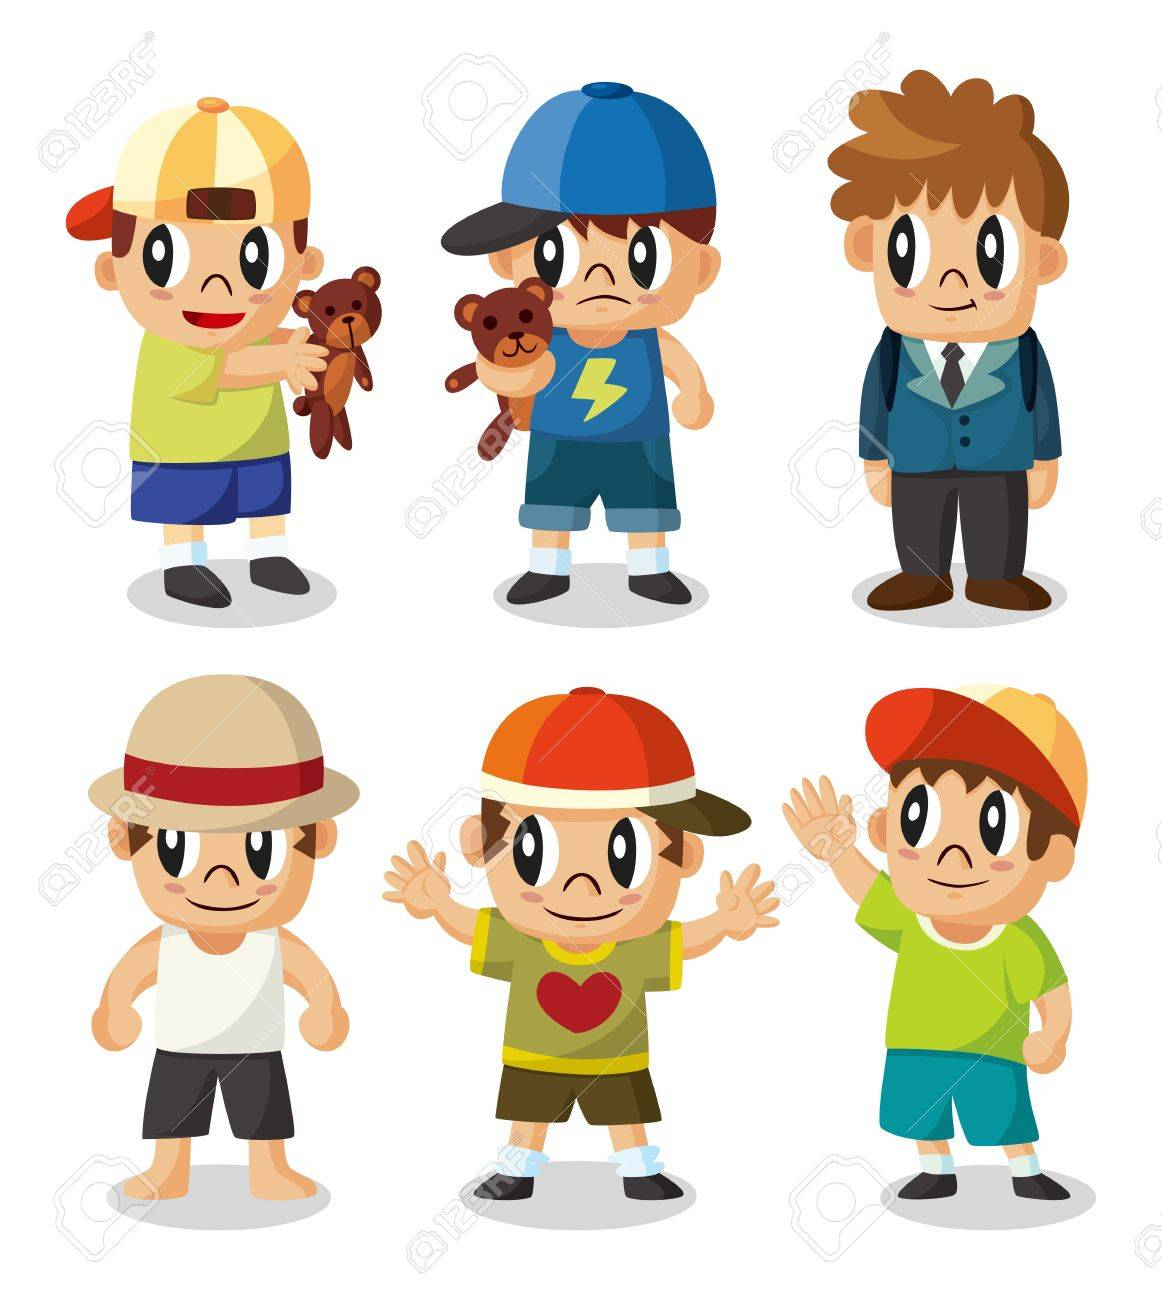 vector cartoon kid icon set - Cartoon Kid Images